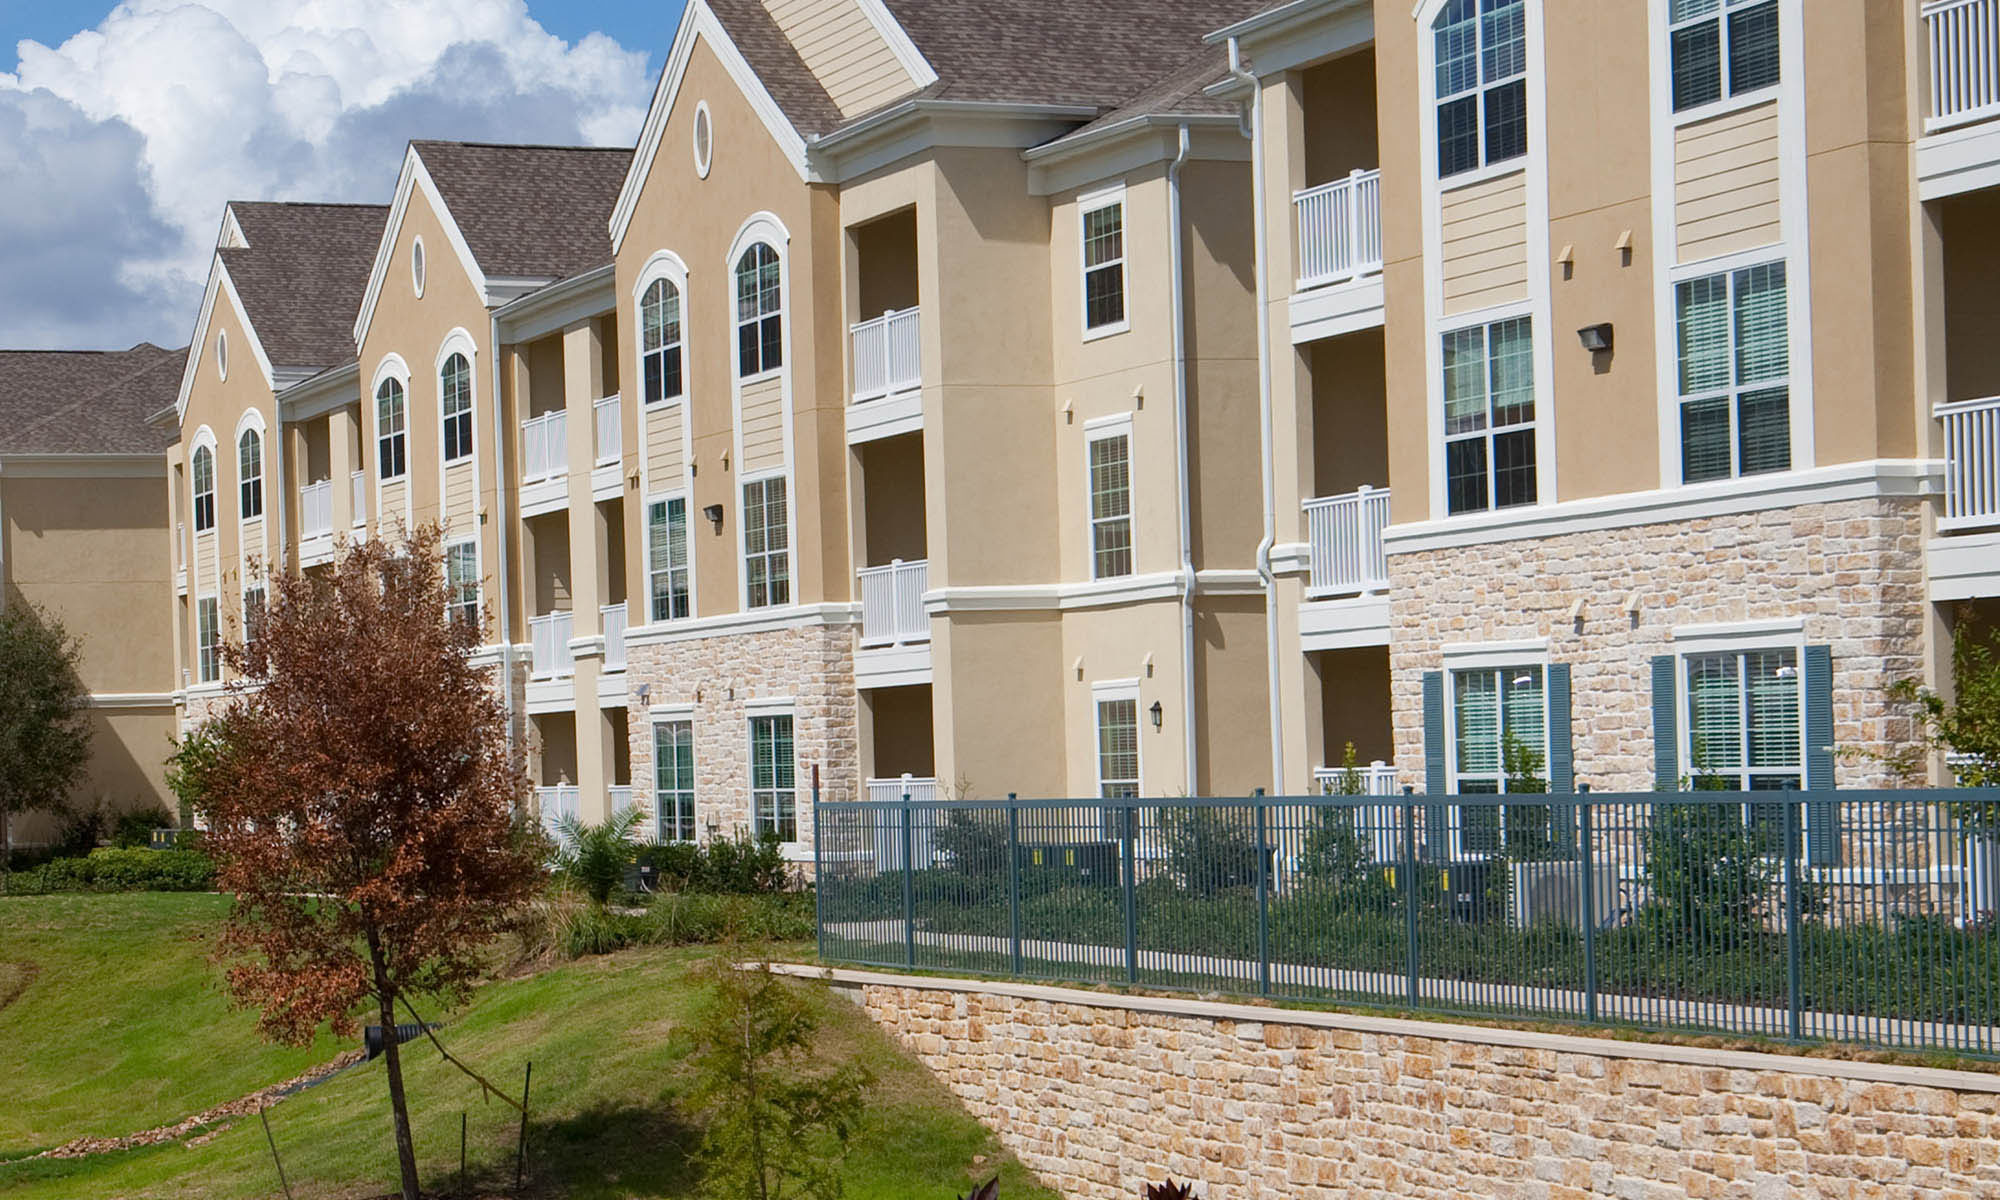 3 Bedroom Apartments In Katy Tx Katy Tx Senior Apartments For Rent Grand Parkway